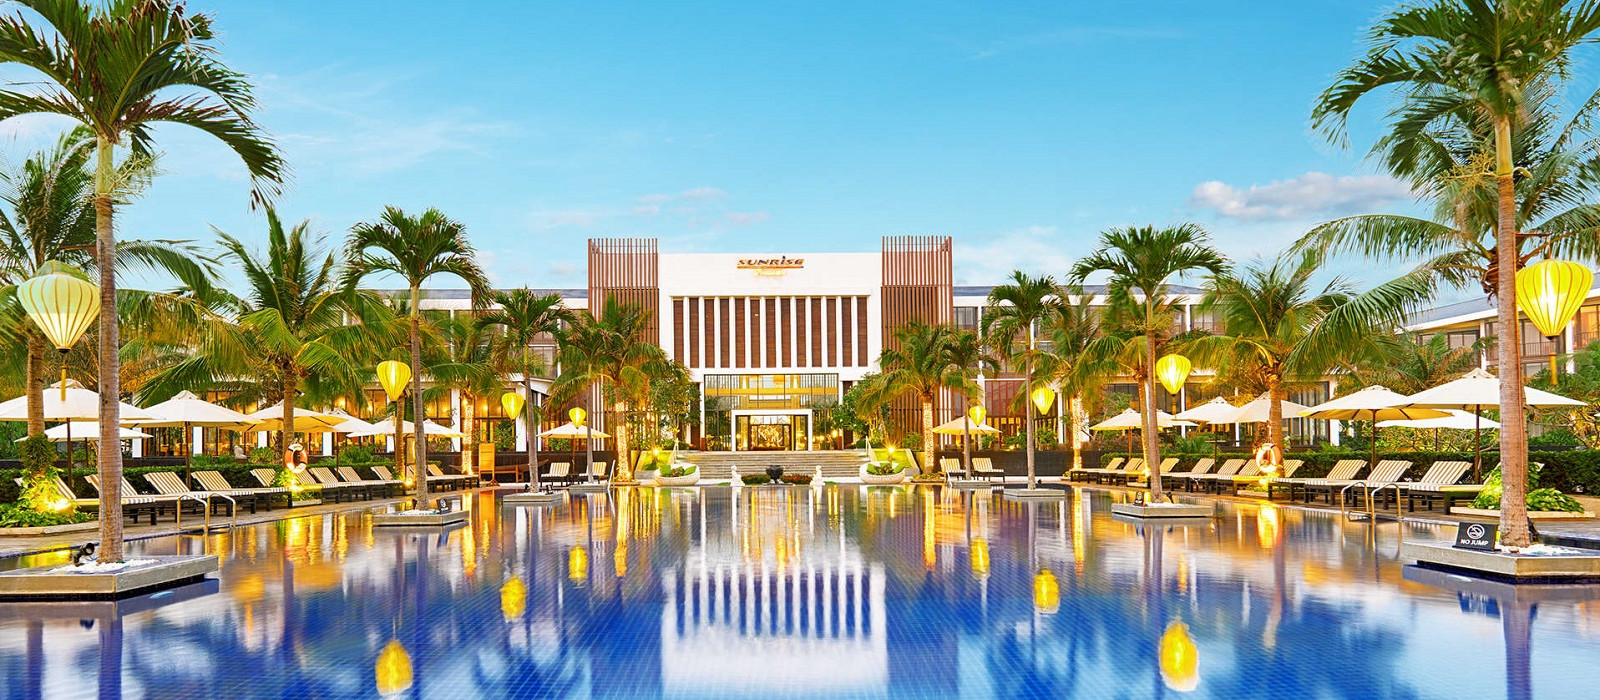 Hotel Sunrise Premium Resort & Spa, Hoi An Vietnam